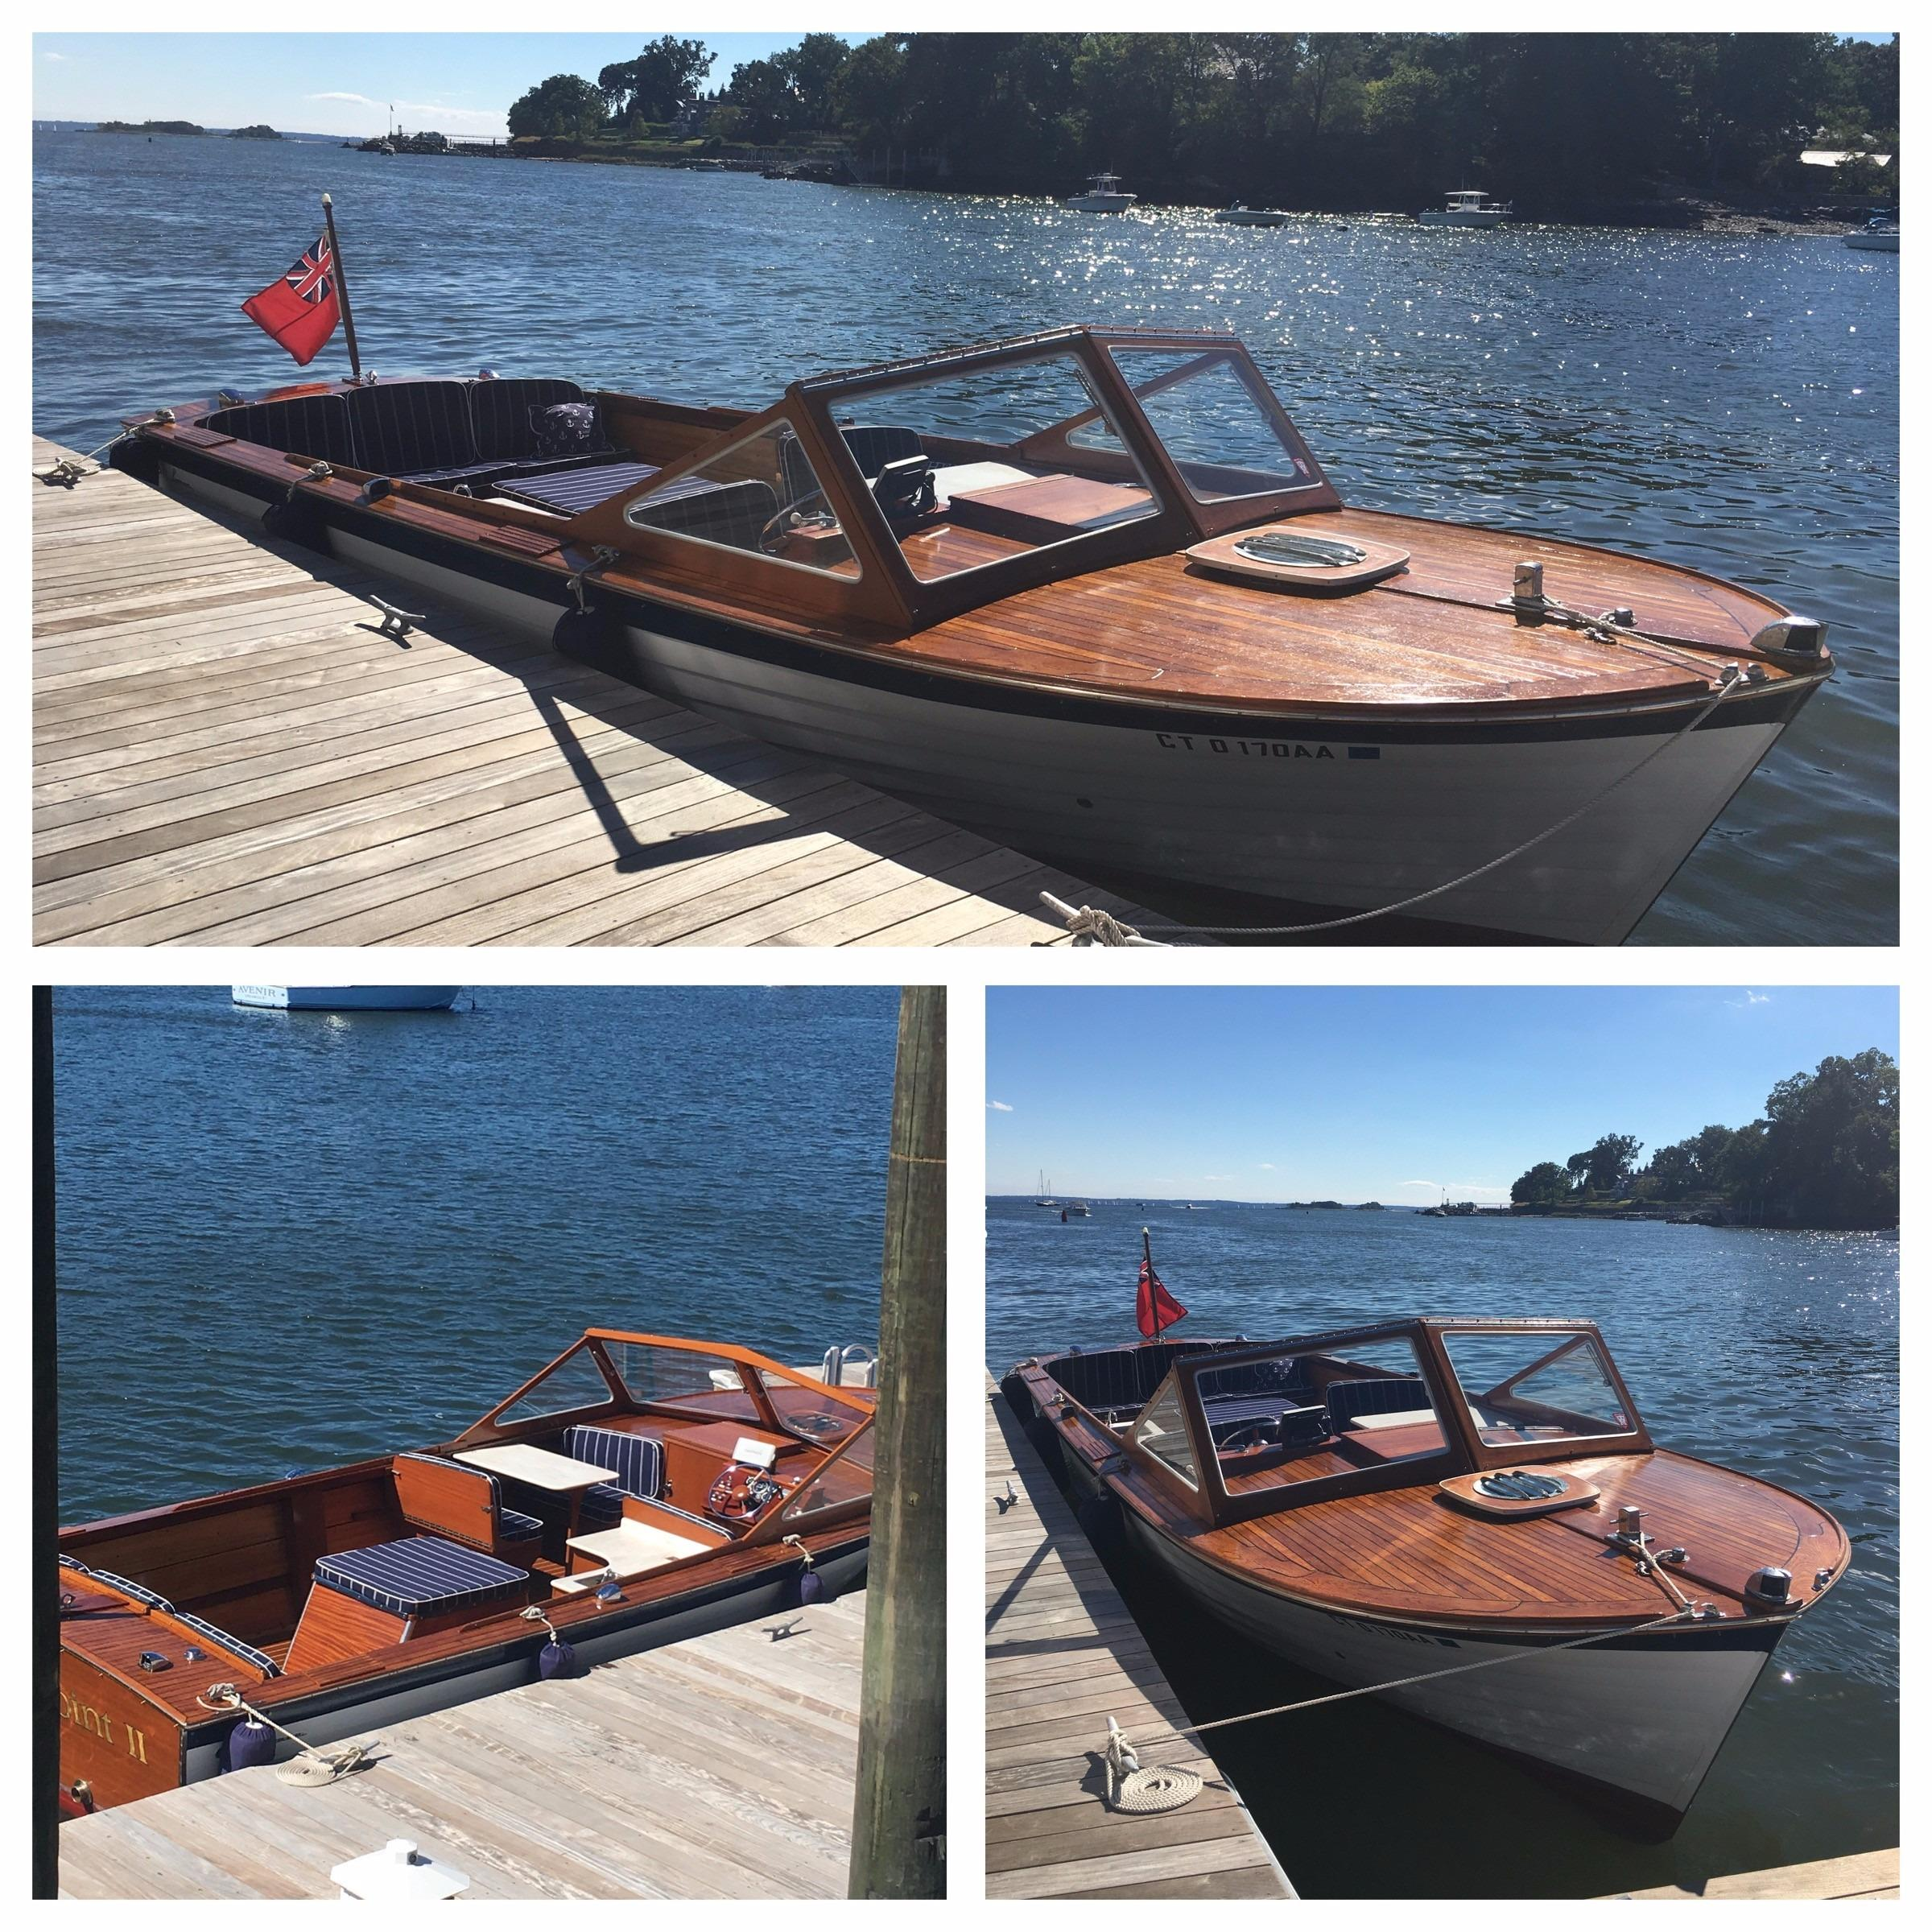 Boats For Sale In Ct >> 1966 Lyman 25 Cruisette Power Boat For Sale - www.yachtworld.com